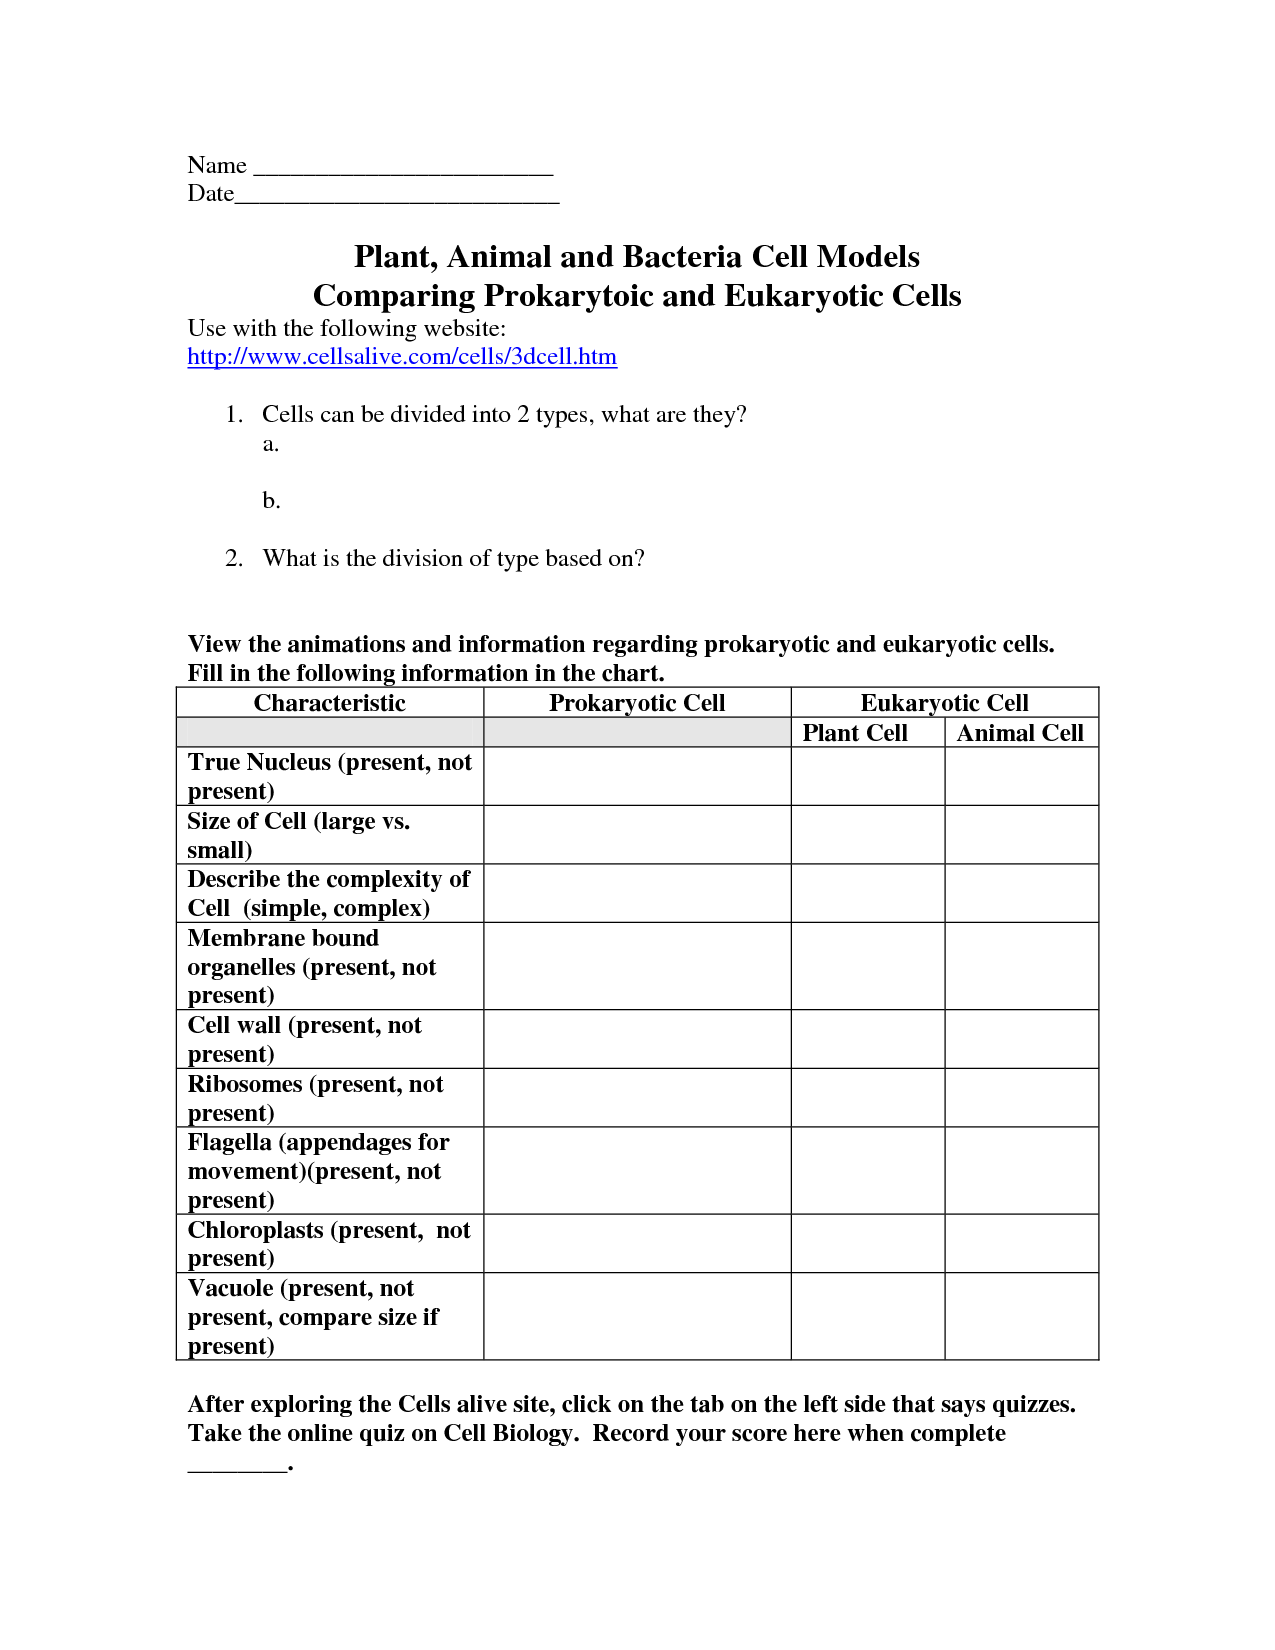 cells worksheets   ... Anima and Bacterial Cell comparing ...